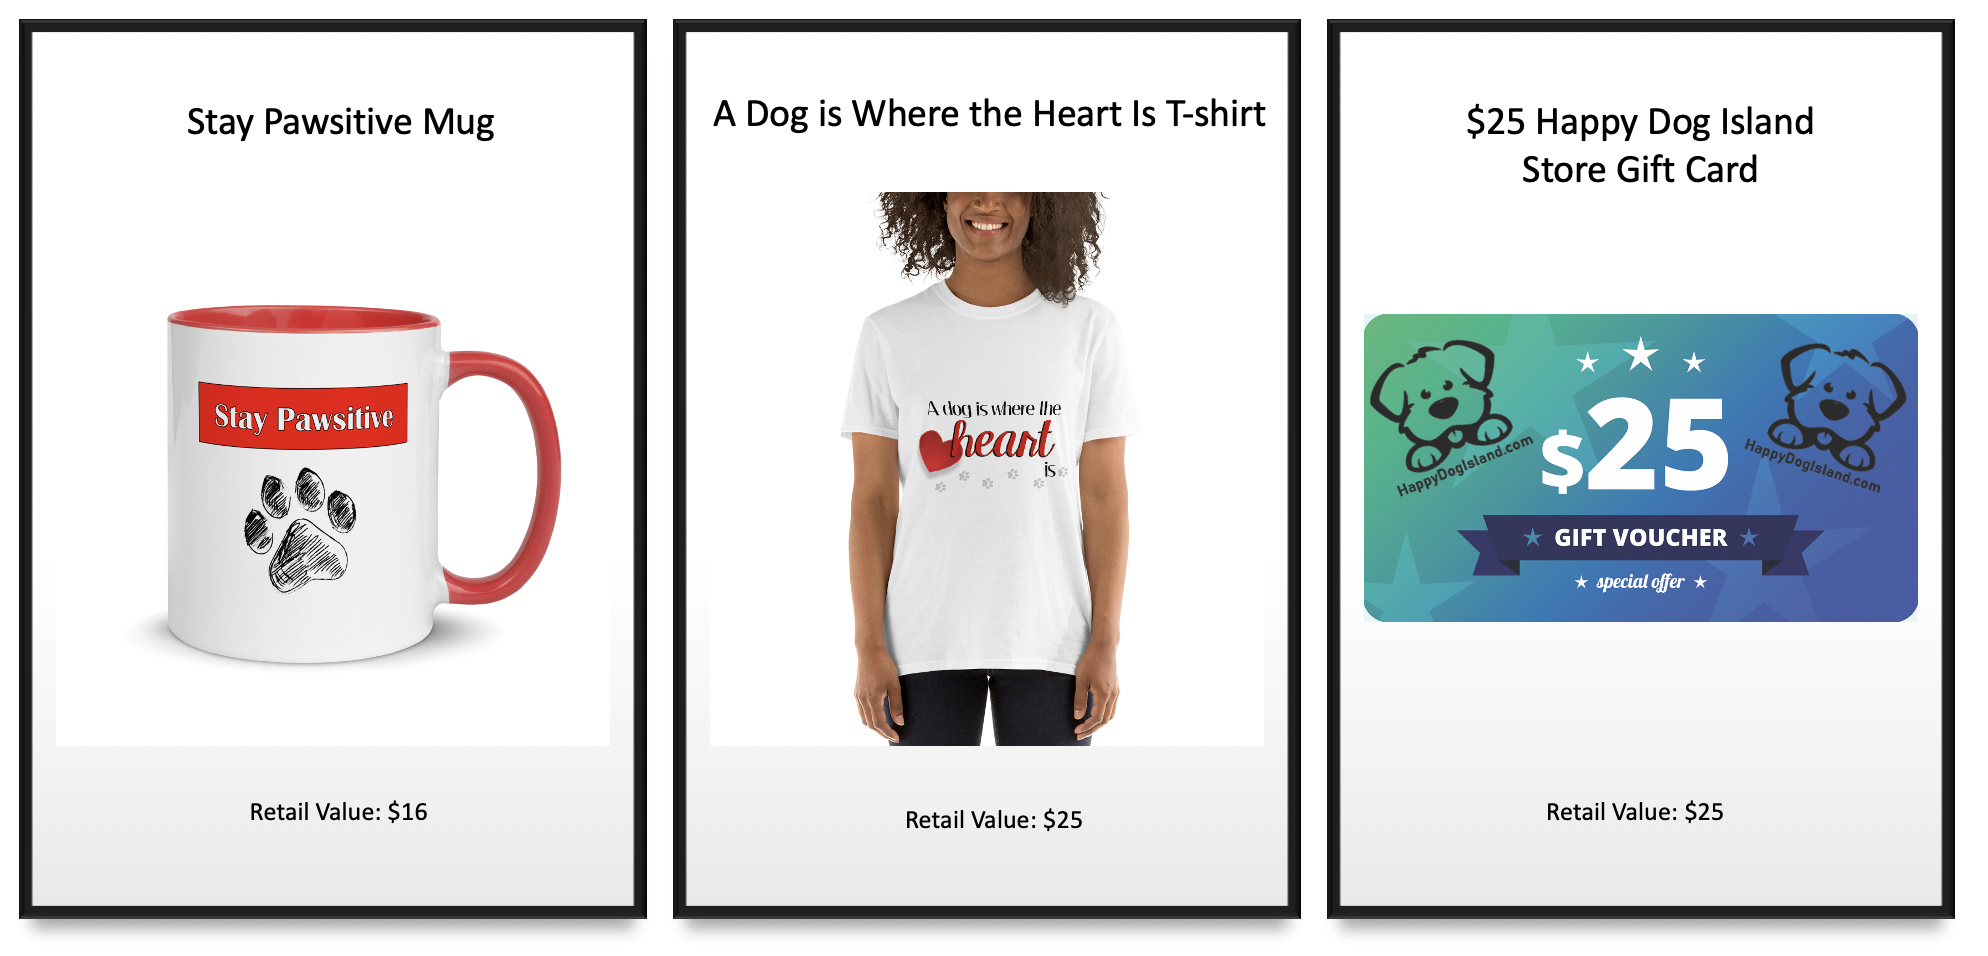 Stay Pawsitive Mug Retail Value $16, A Dog is Where the Heart Is T-shirt Retail Value $25 and $25 Happy Dog Island Store Gift Card